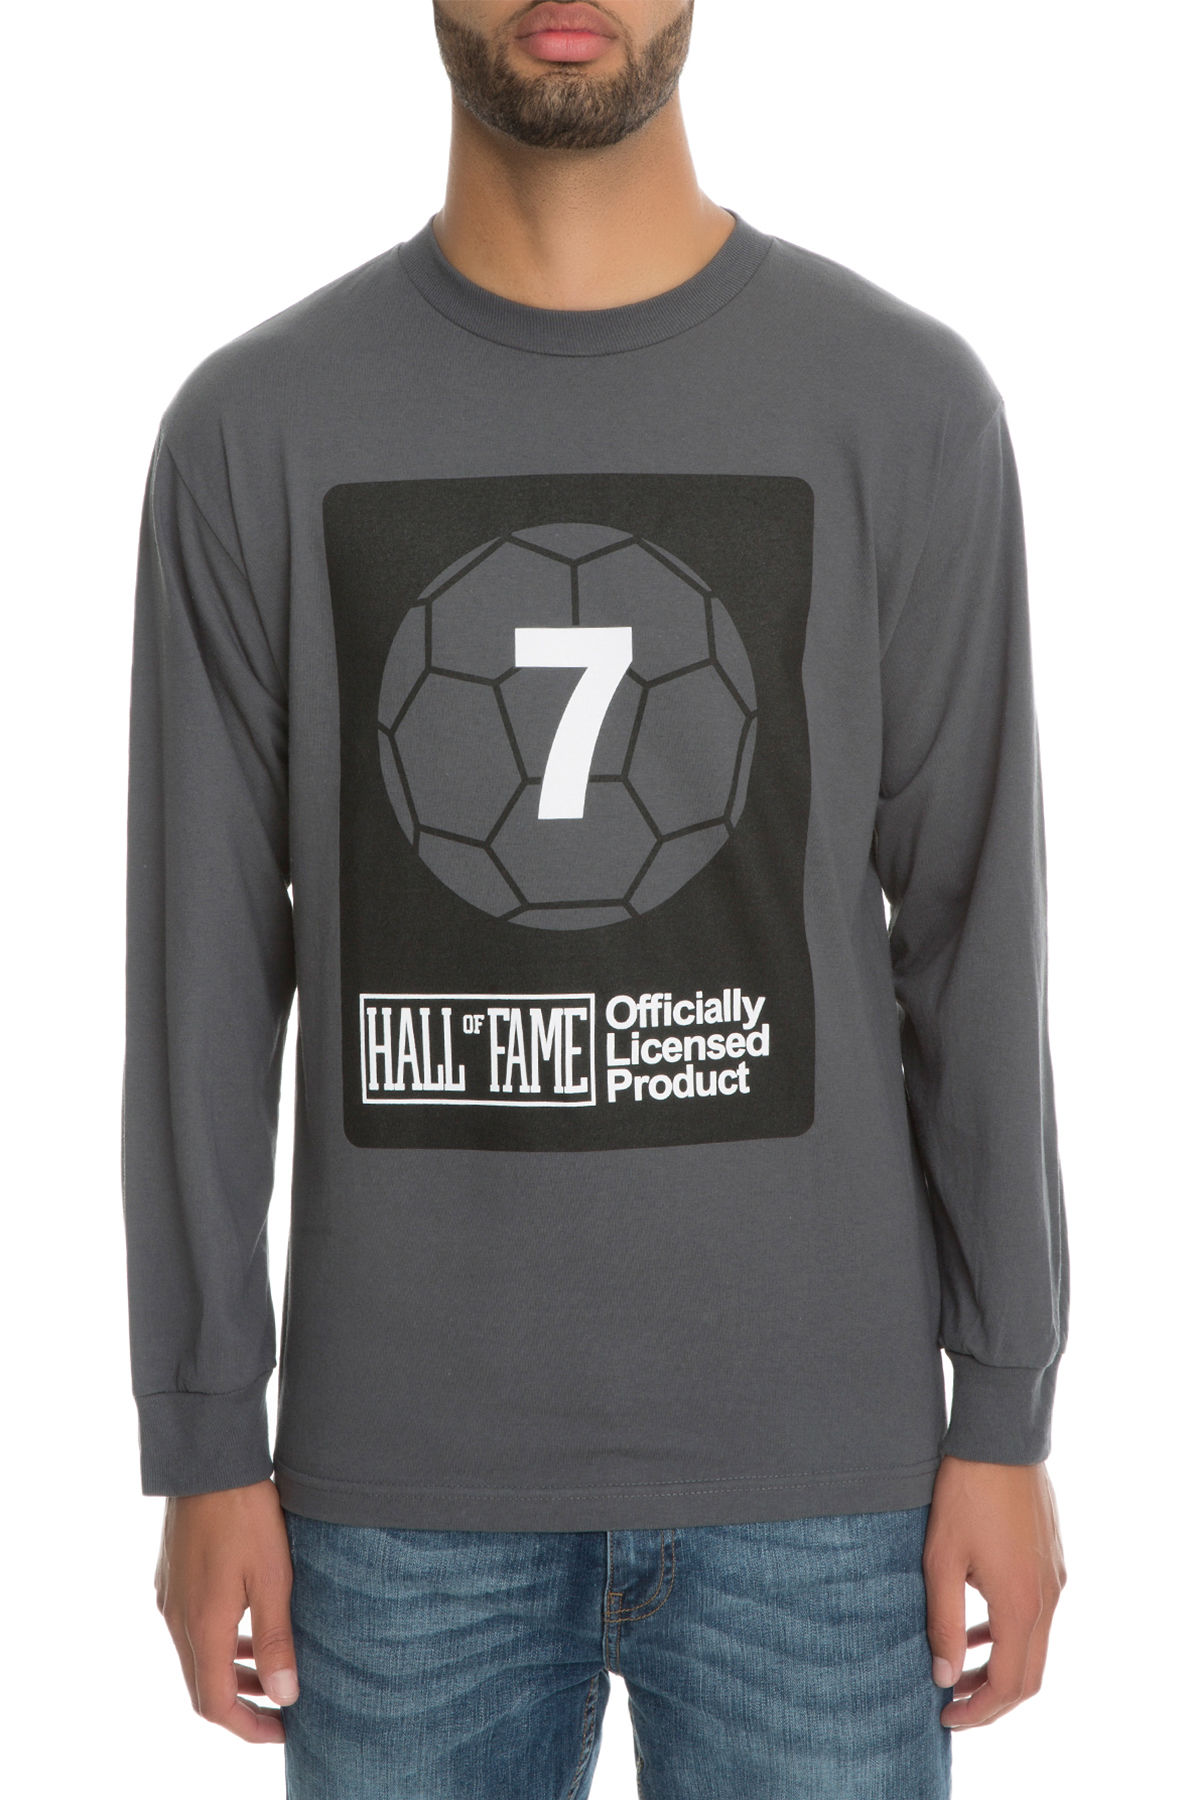 The Goalie Long Sleeve Tee in Charcoal